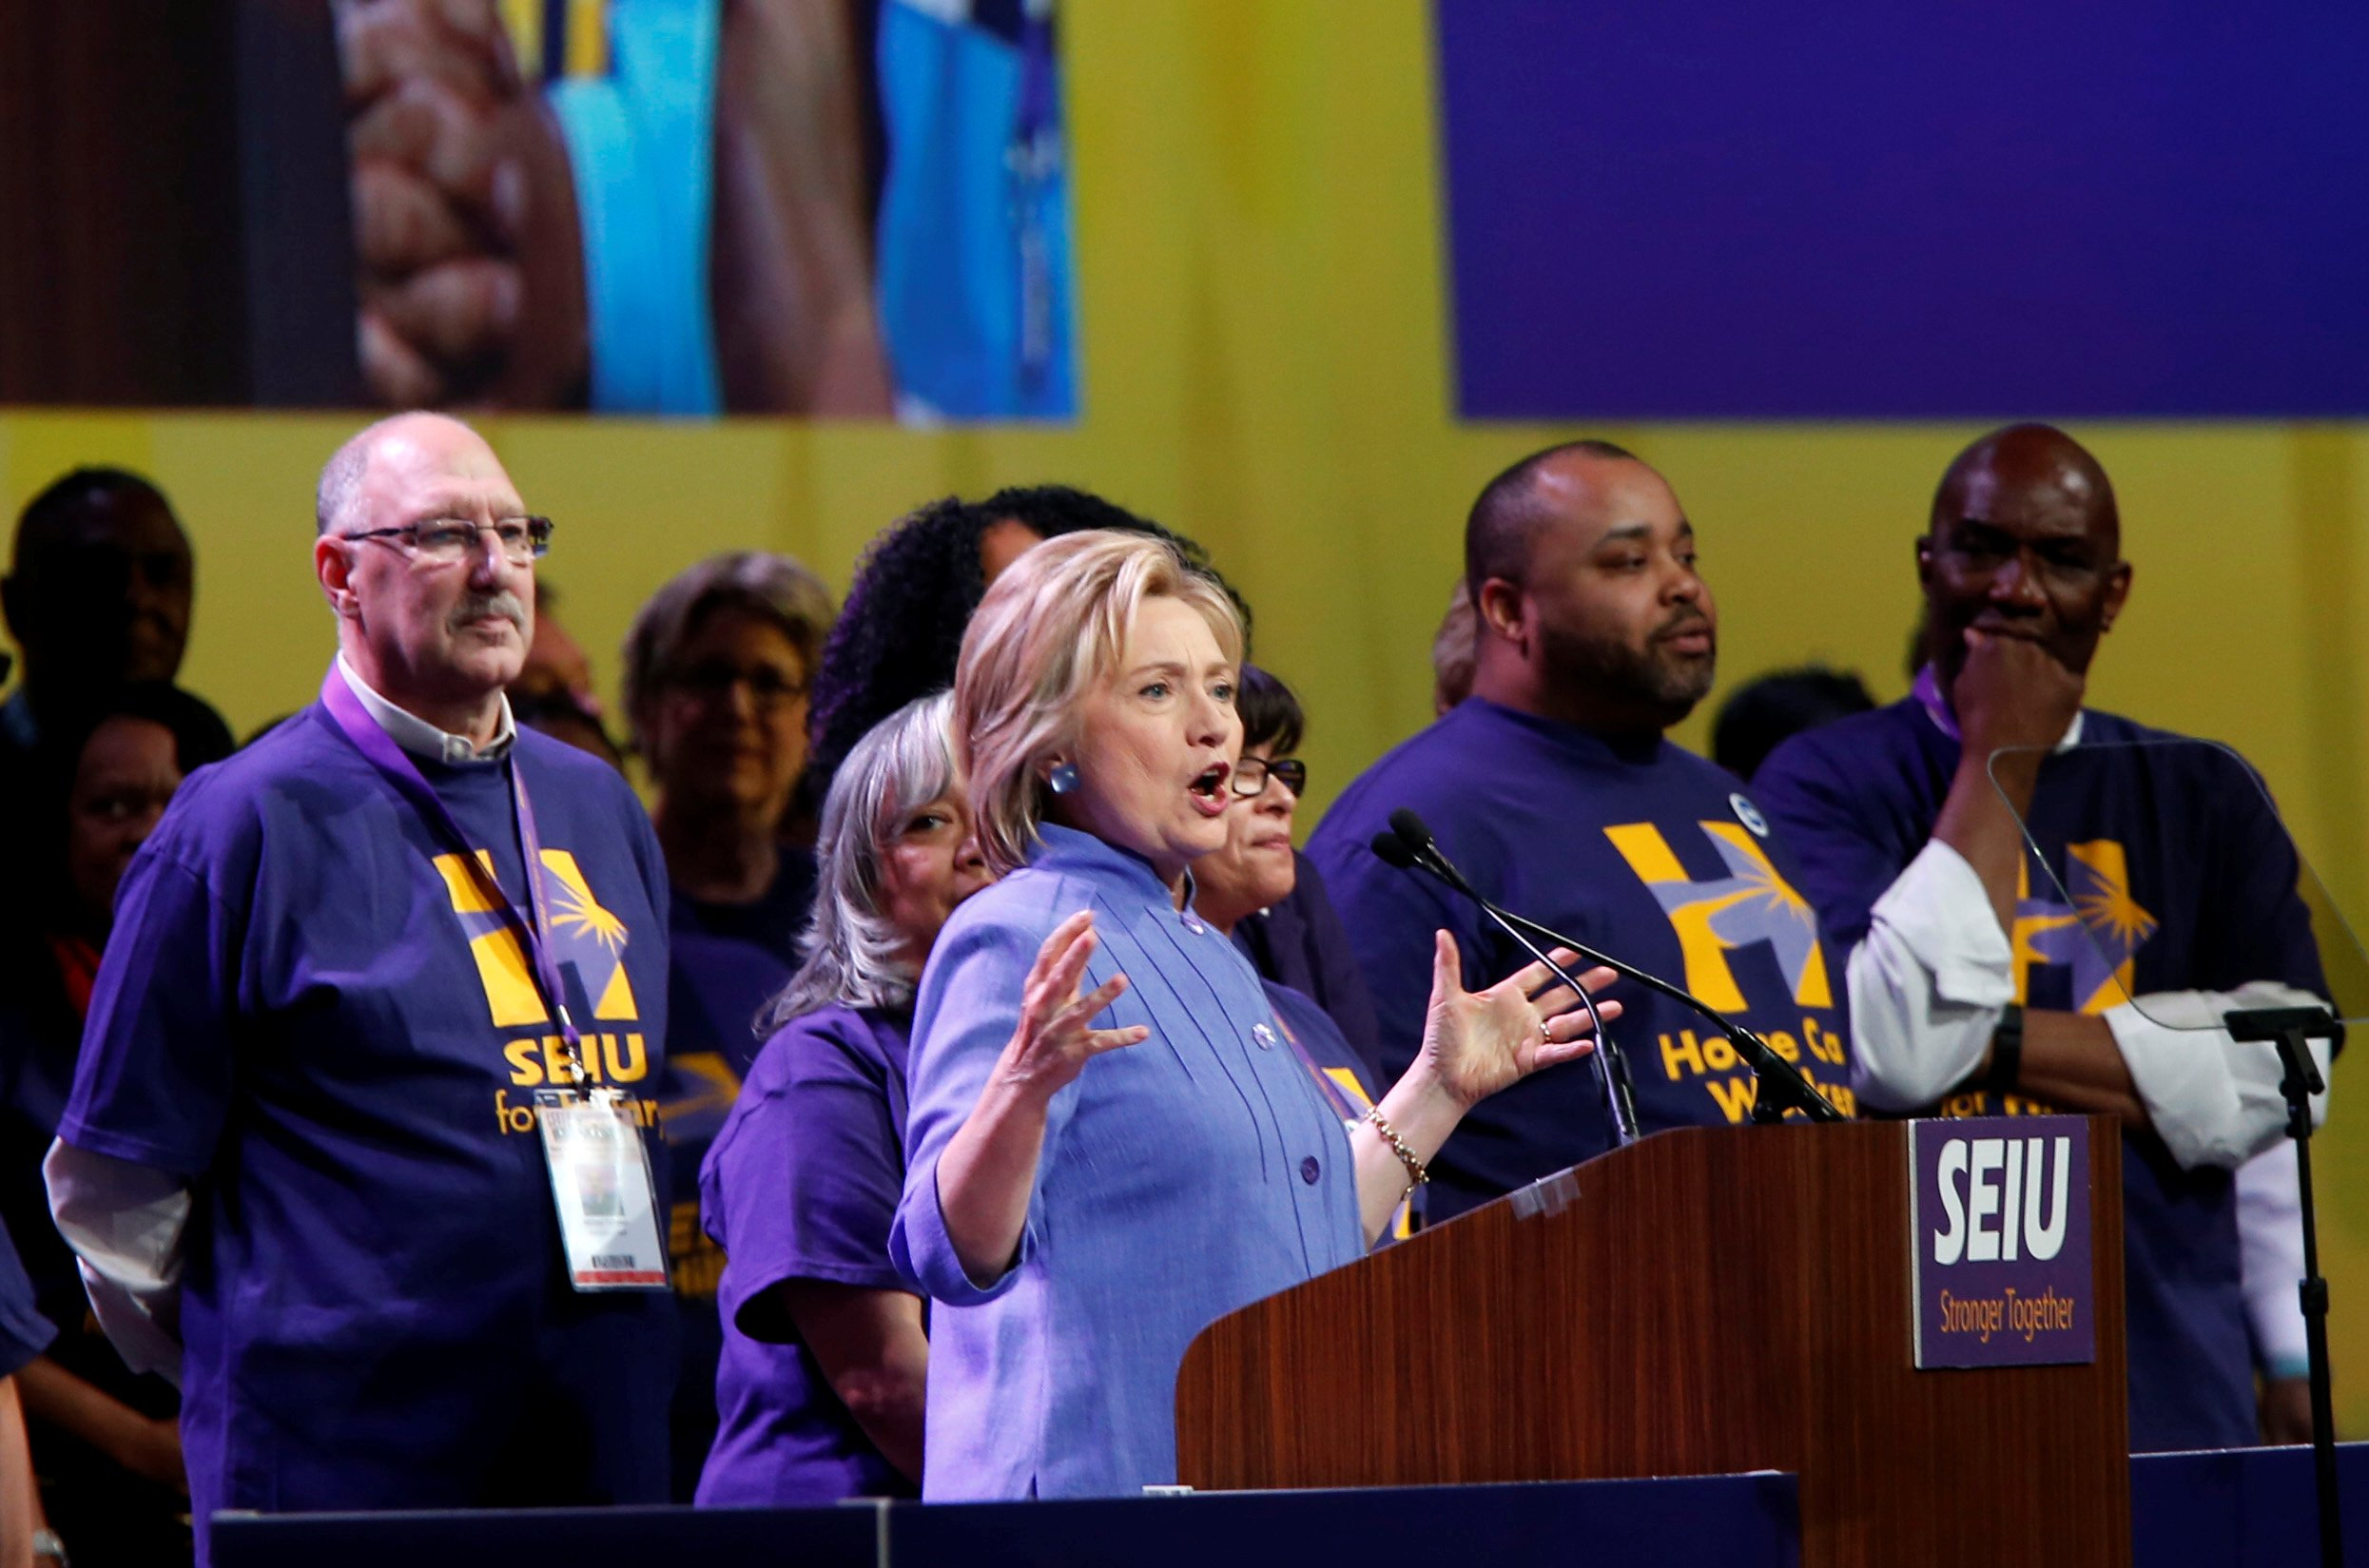 Democratic presidential candidate Hillary Clinton addresses Service Employees Union members at the union's 2016 International Convention in Detroit, Michigan May 23, 2016. REUTERS/Rebecca Cook